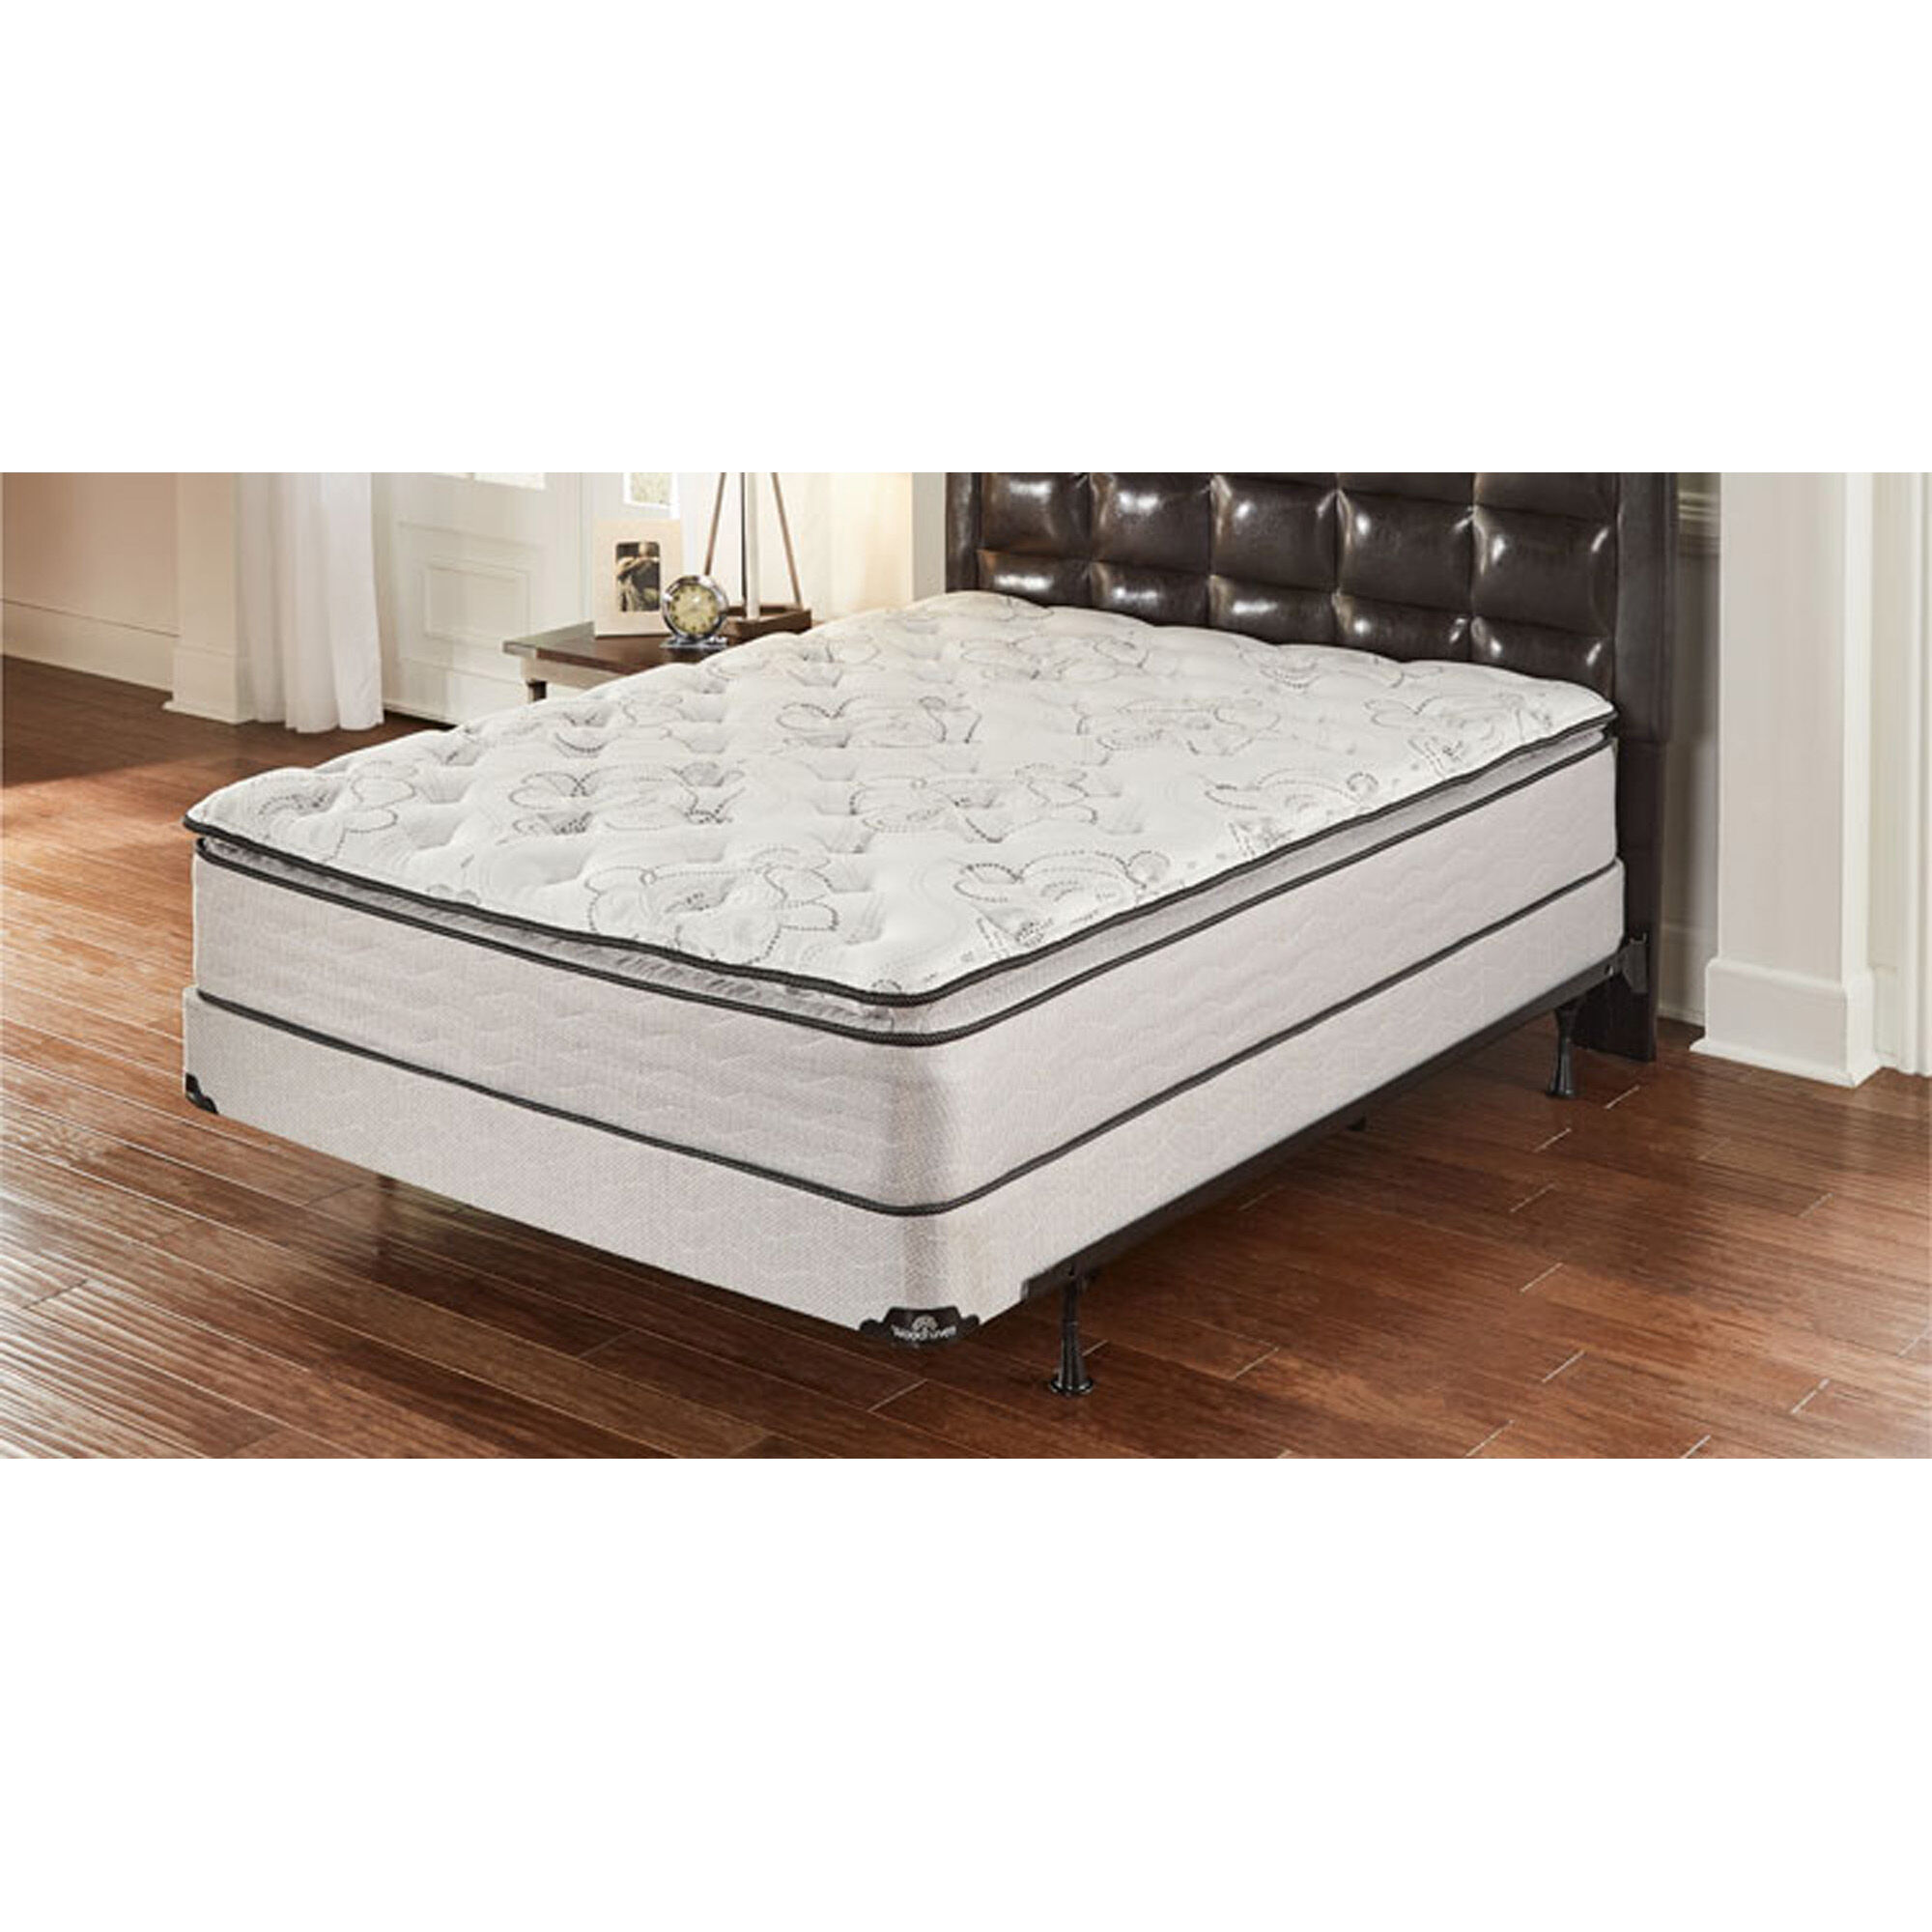 Pillowtop Plush Queen Mattress Set With Split Foundation U0026 Protectors